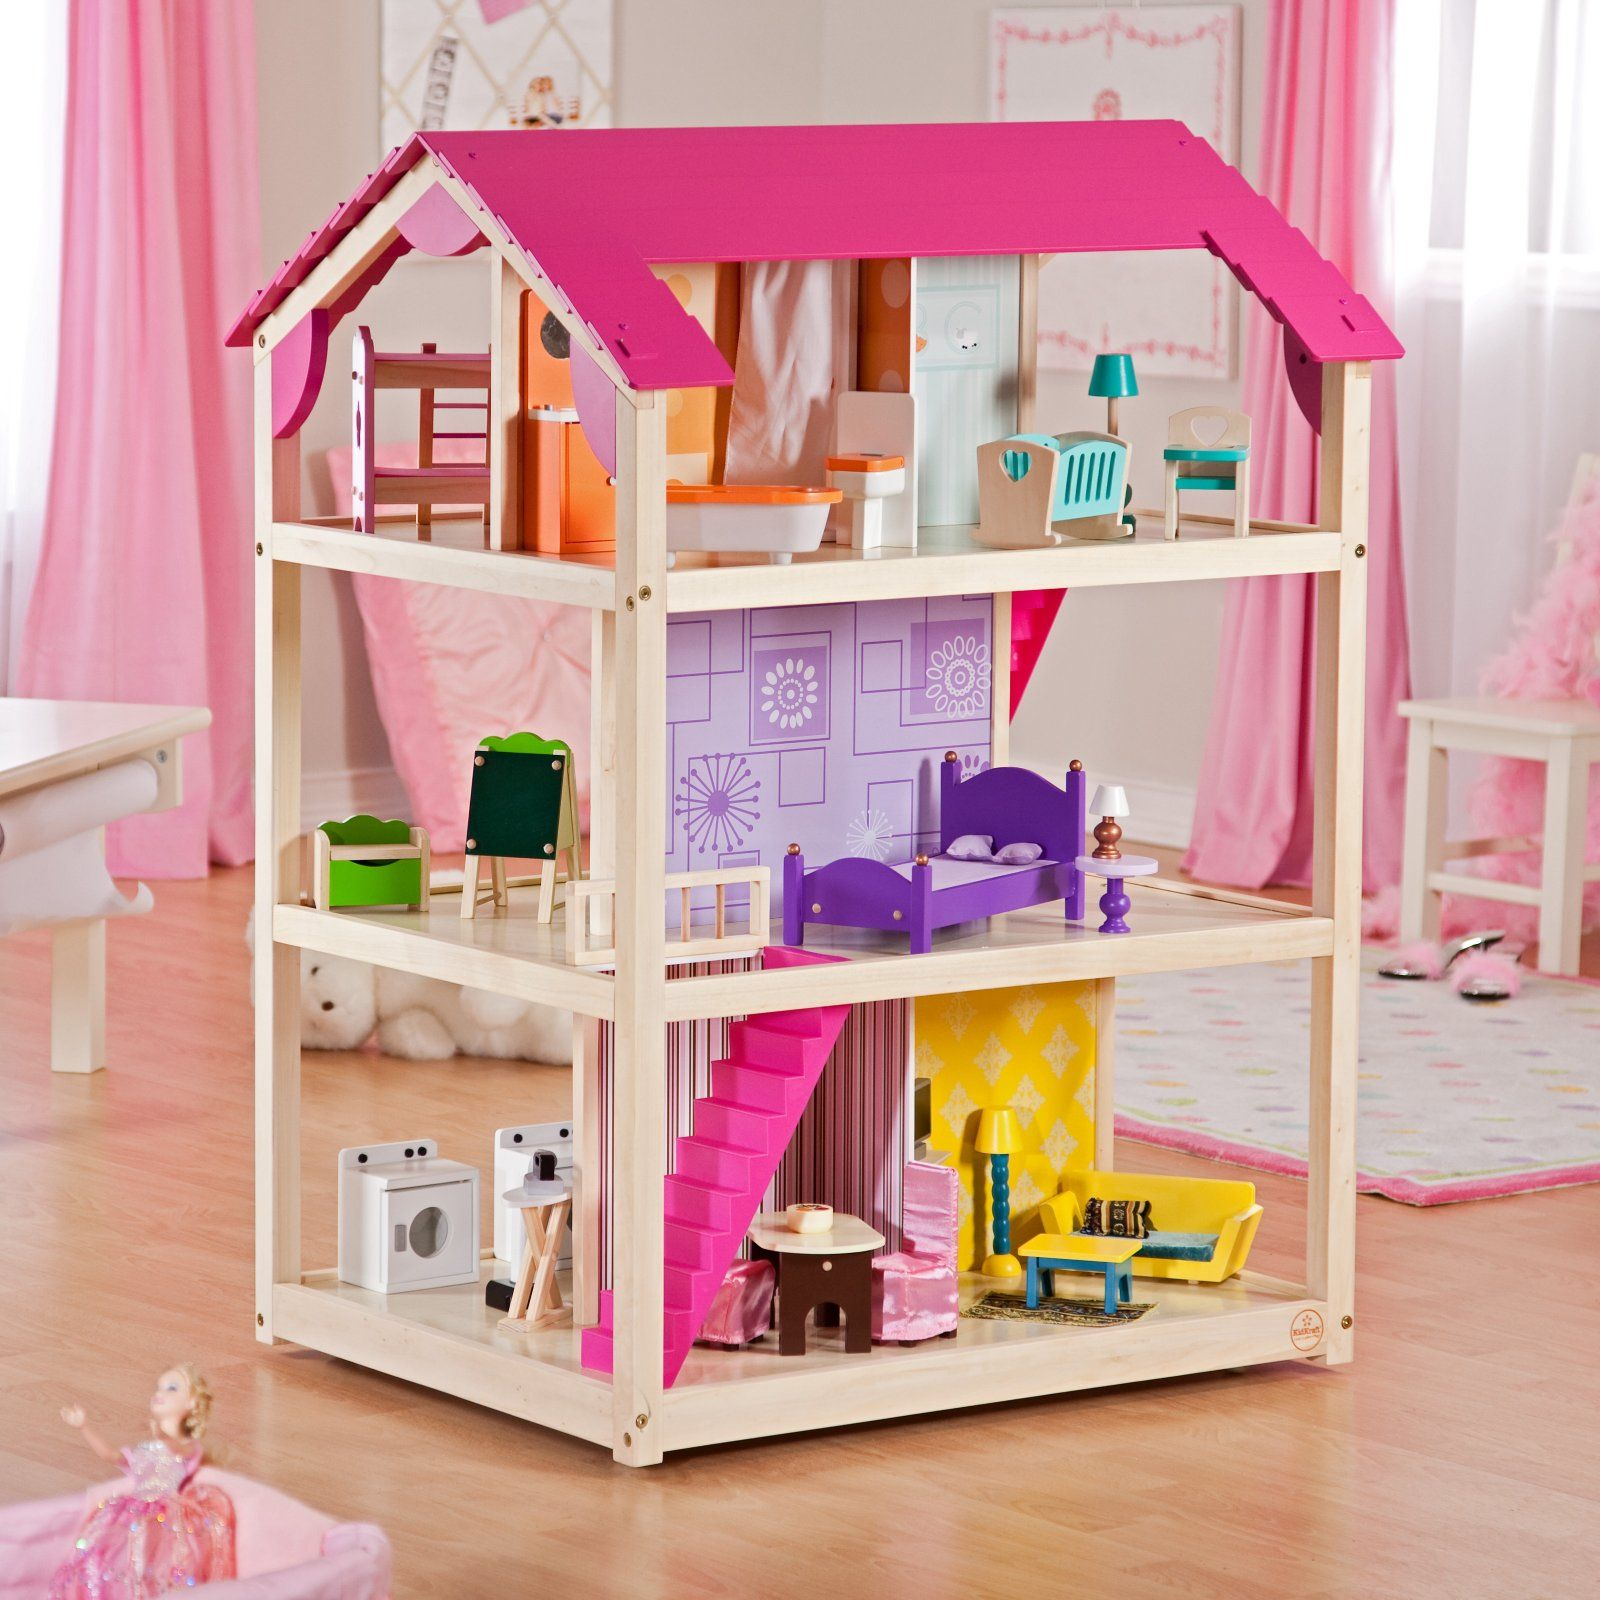 I Picked This Dollhouse Because It Allows More Creativity There Are No Preset Rooms With